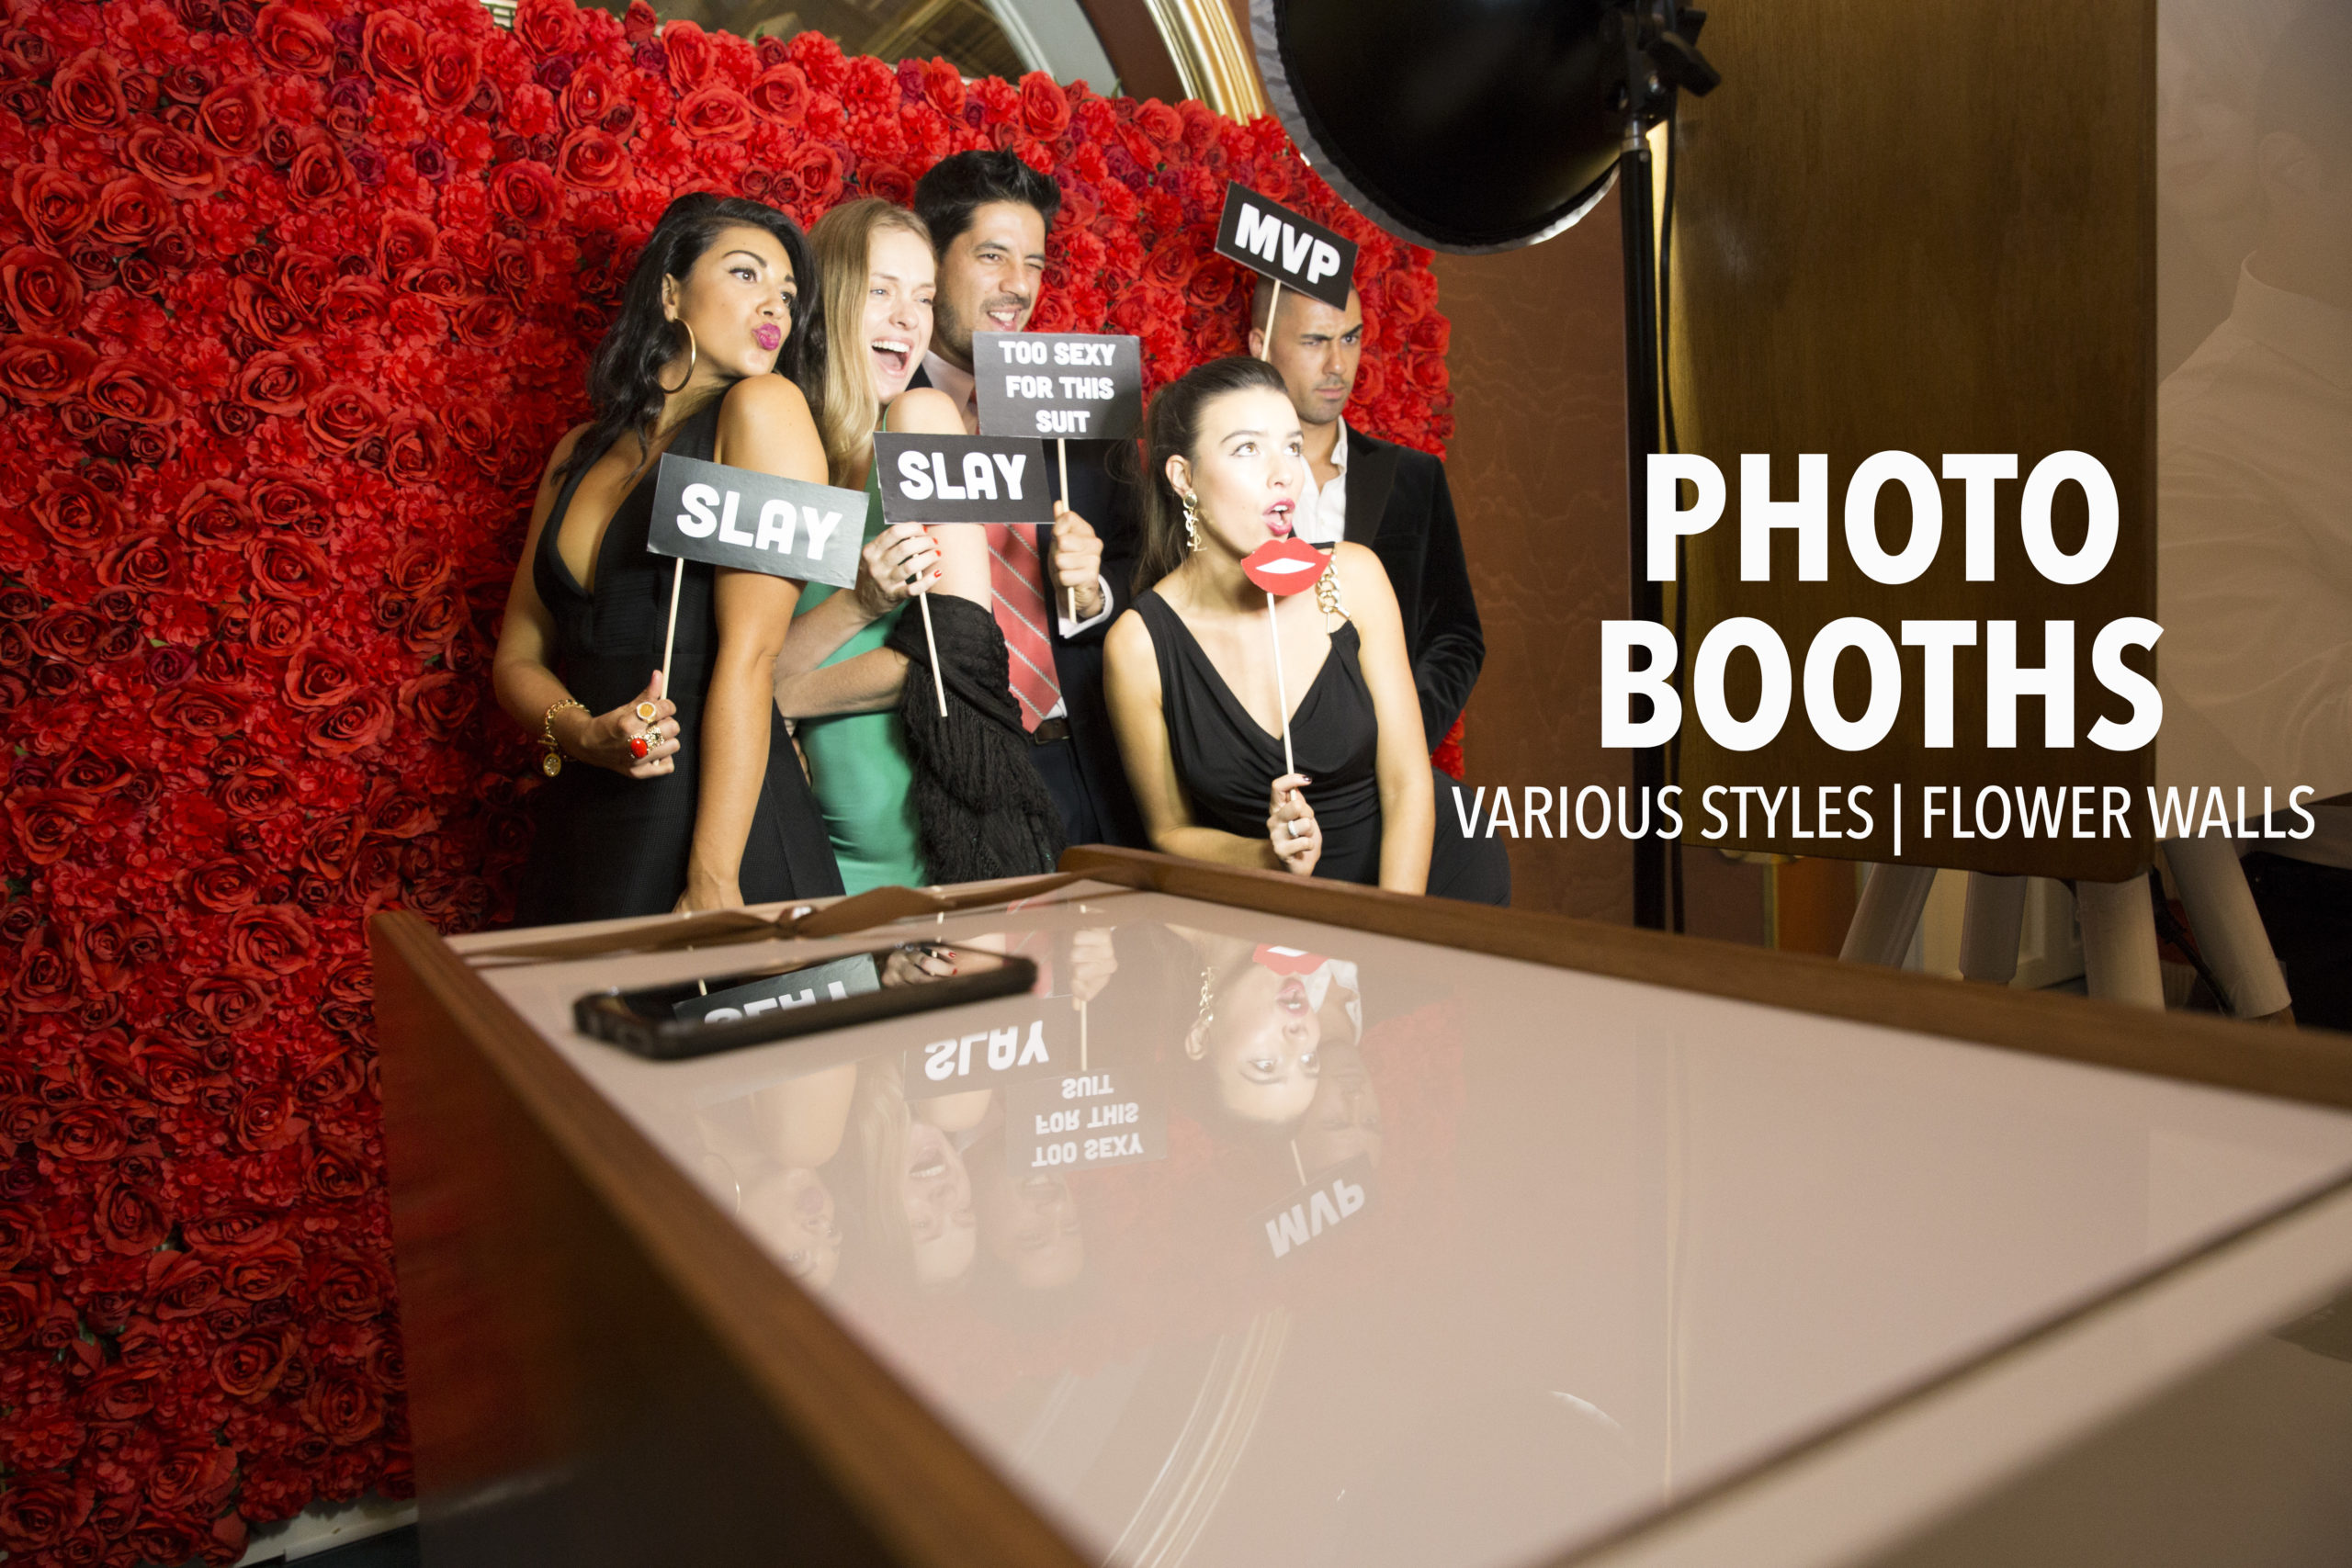 cheap Photo booth hire sydney flower wall backdrop